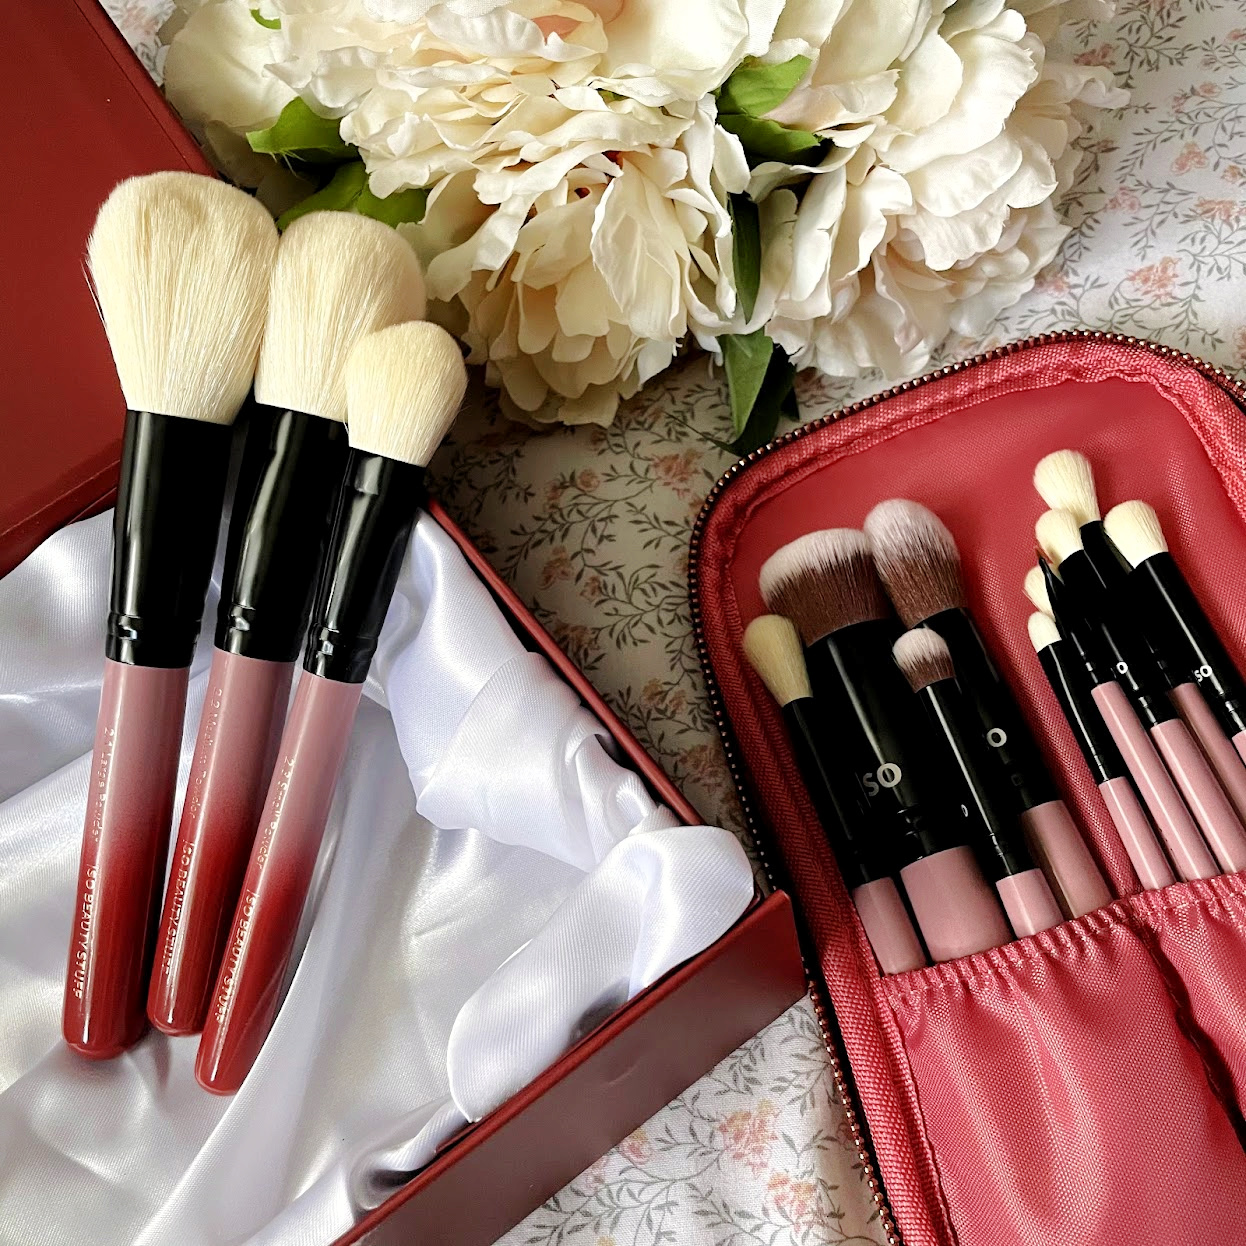 Danielle Levy, SoBeautyStuff, vegan makeup brushes, cruelty free makeup brushes, beauty blogger, Wirral blogger, Liverpool blogger,